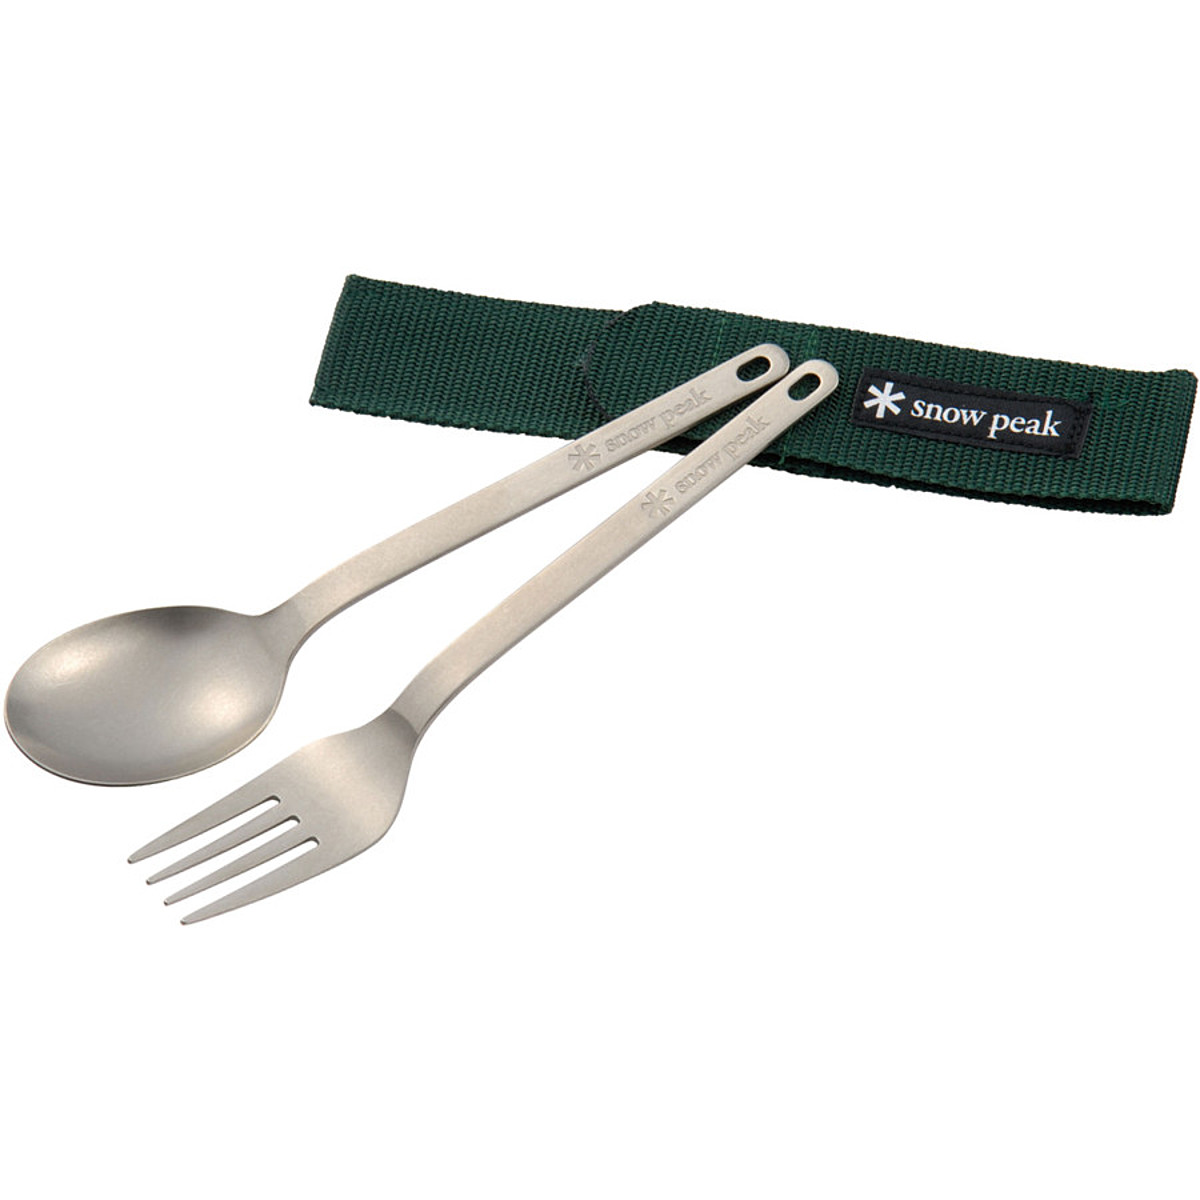 Snow Peak Titanium Fork & Spoon Set